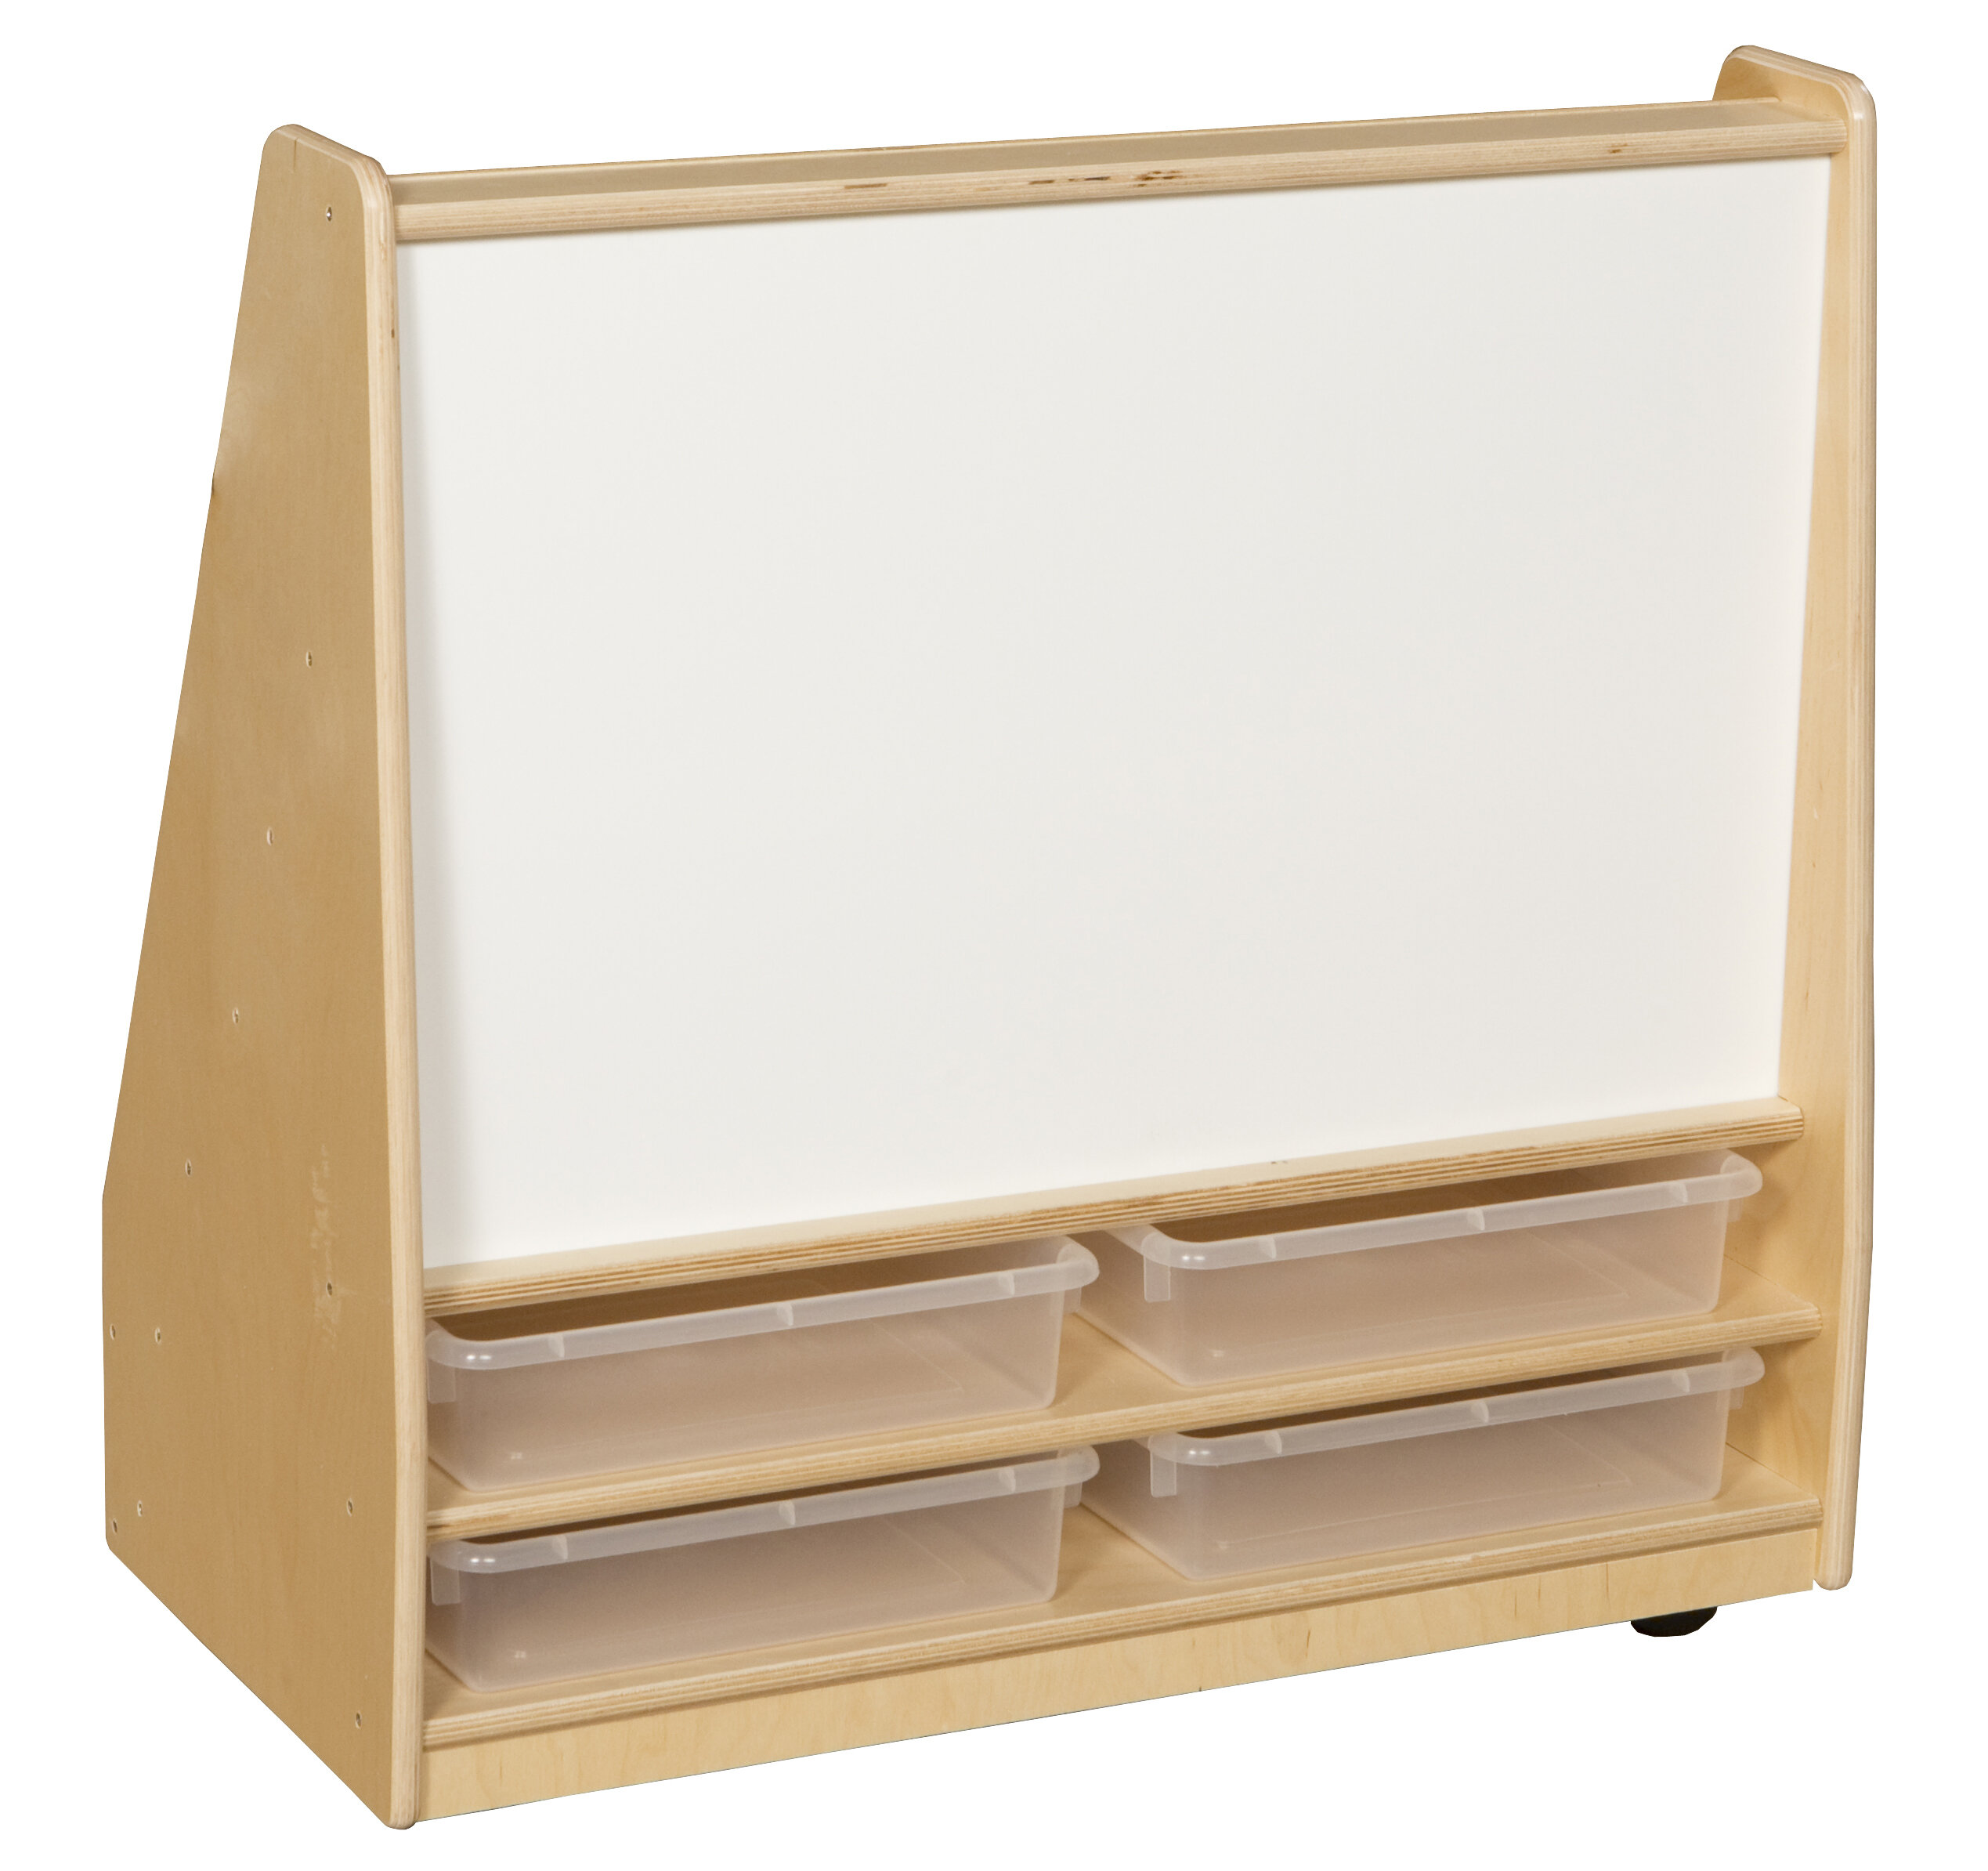 Wood Designs Double Sided 8 Compartment Book Display With Bins Reviews Wayfair